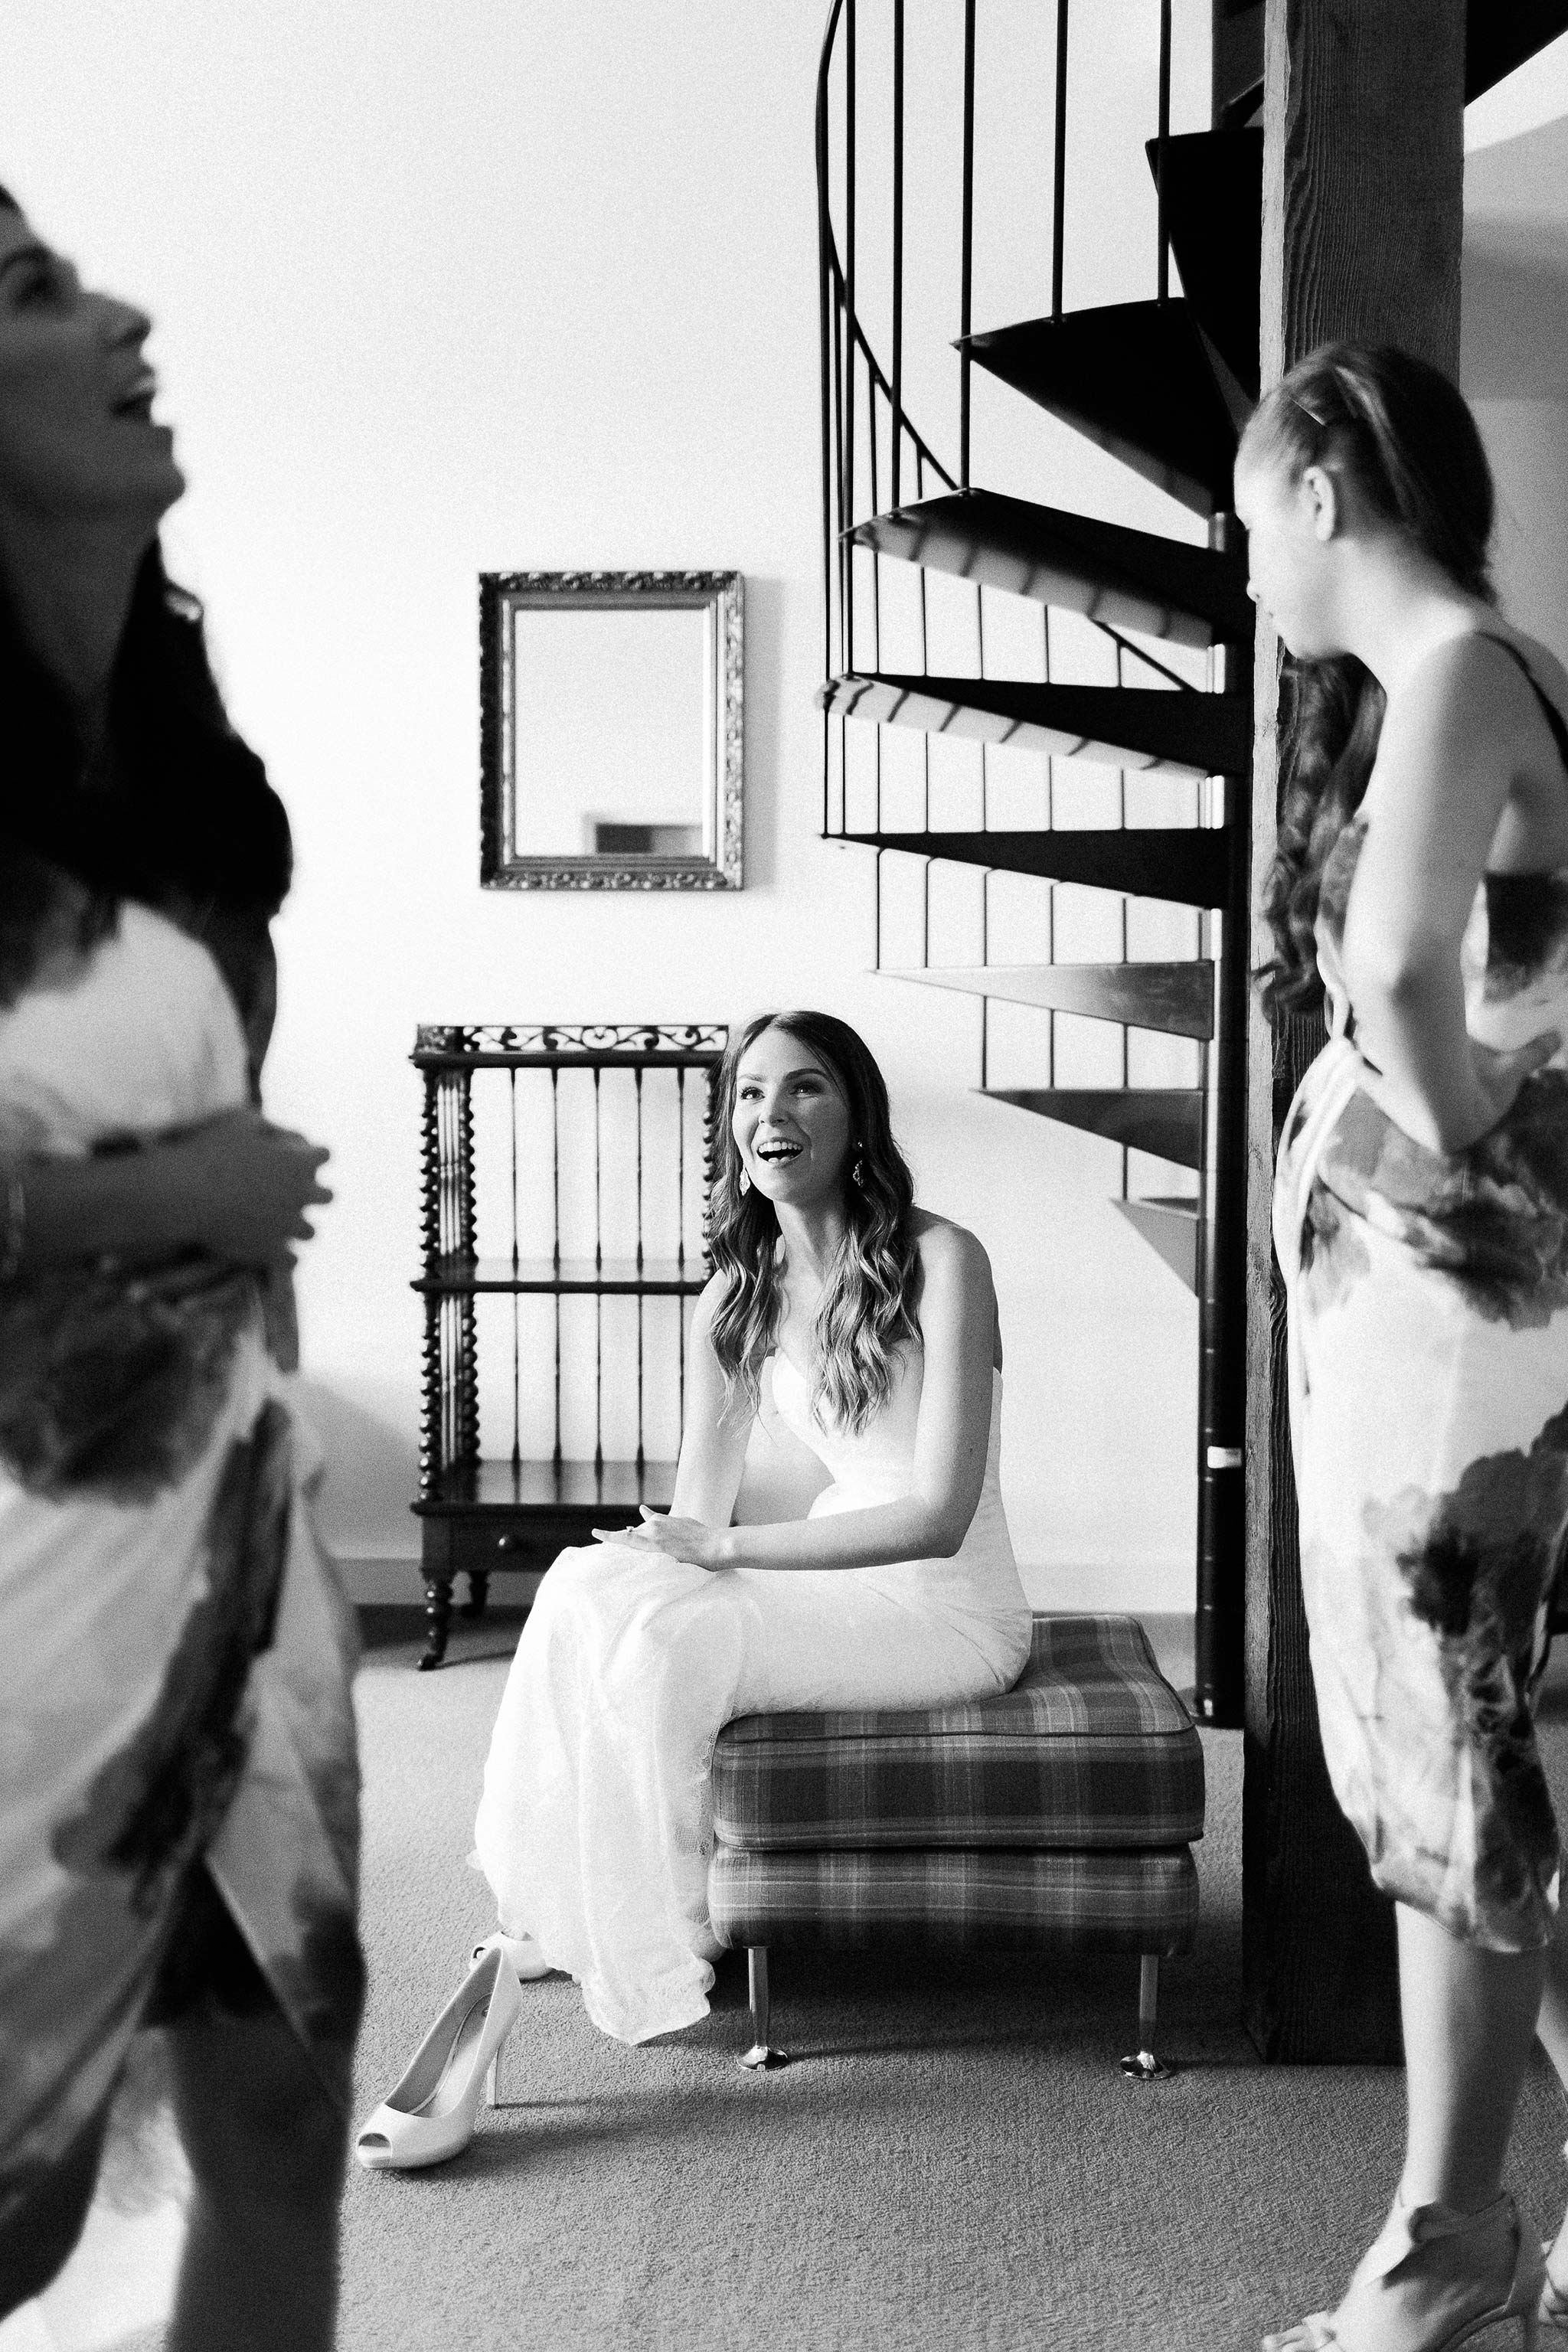 Launceston-Brickendon-barn-Wedding-Photographer-bride-getting-ready